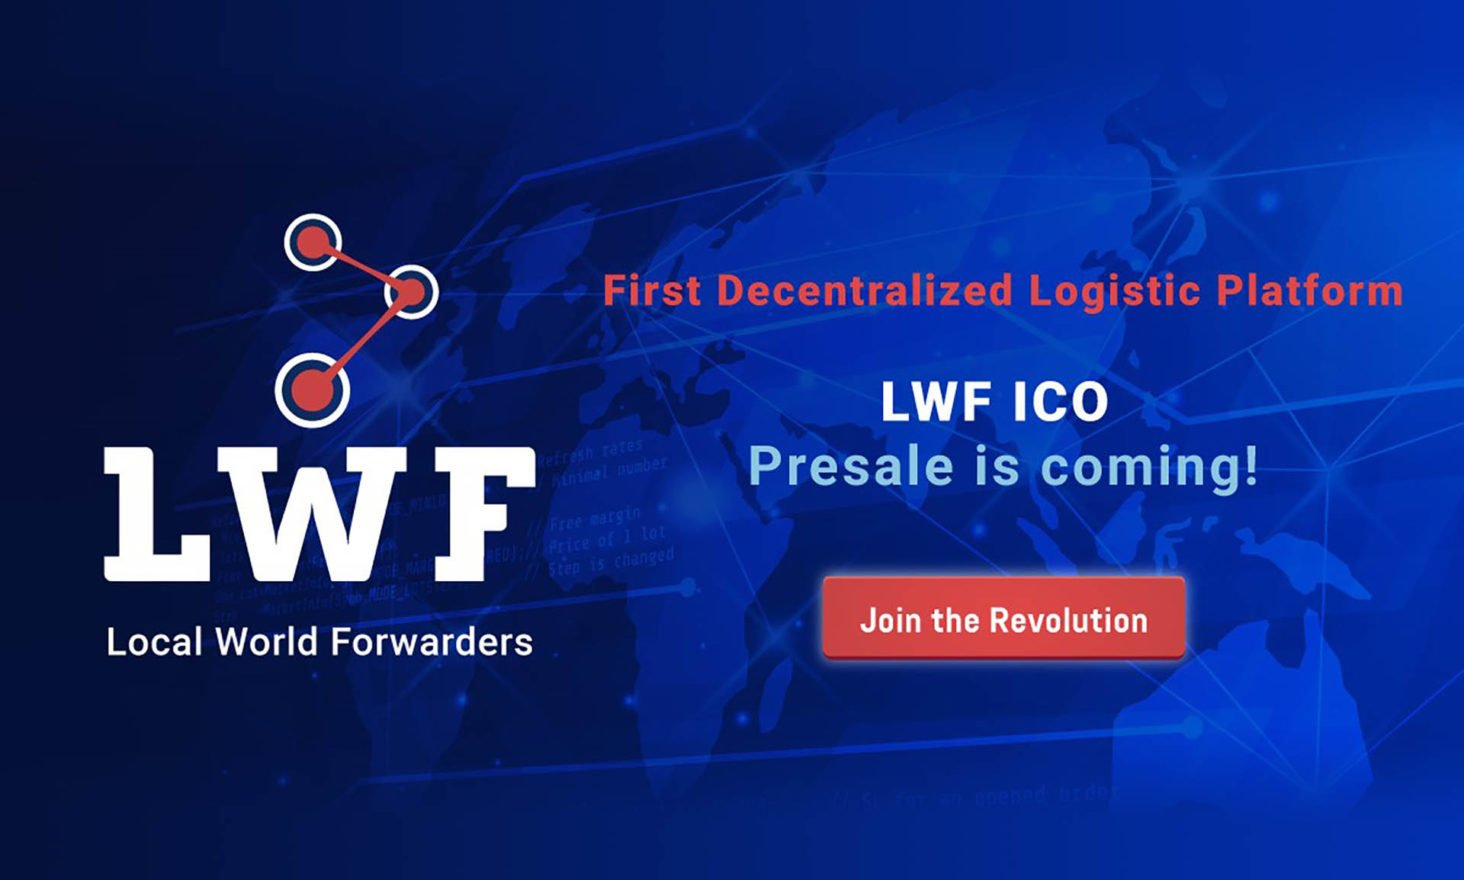 LWF Announces Upcoming ICO Presale